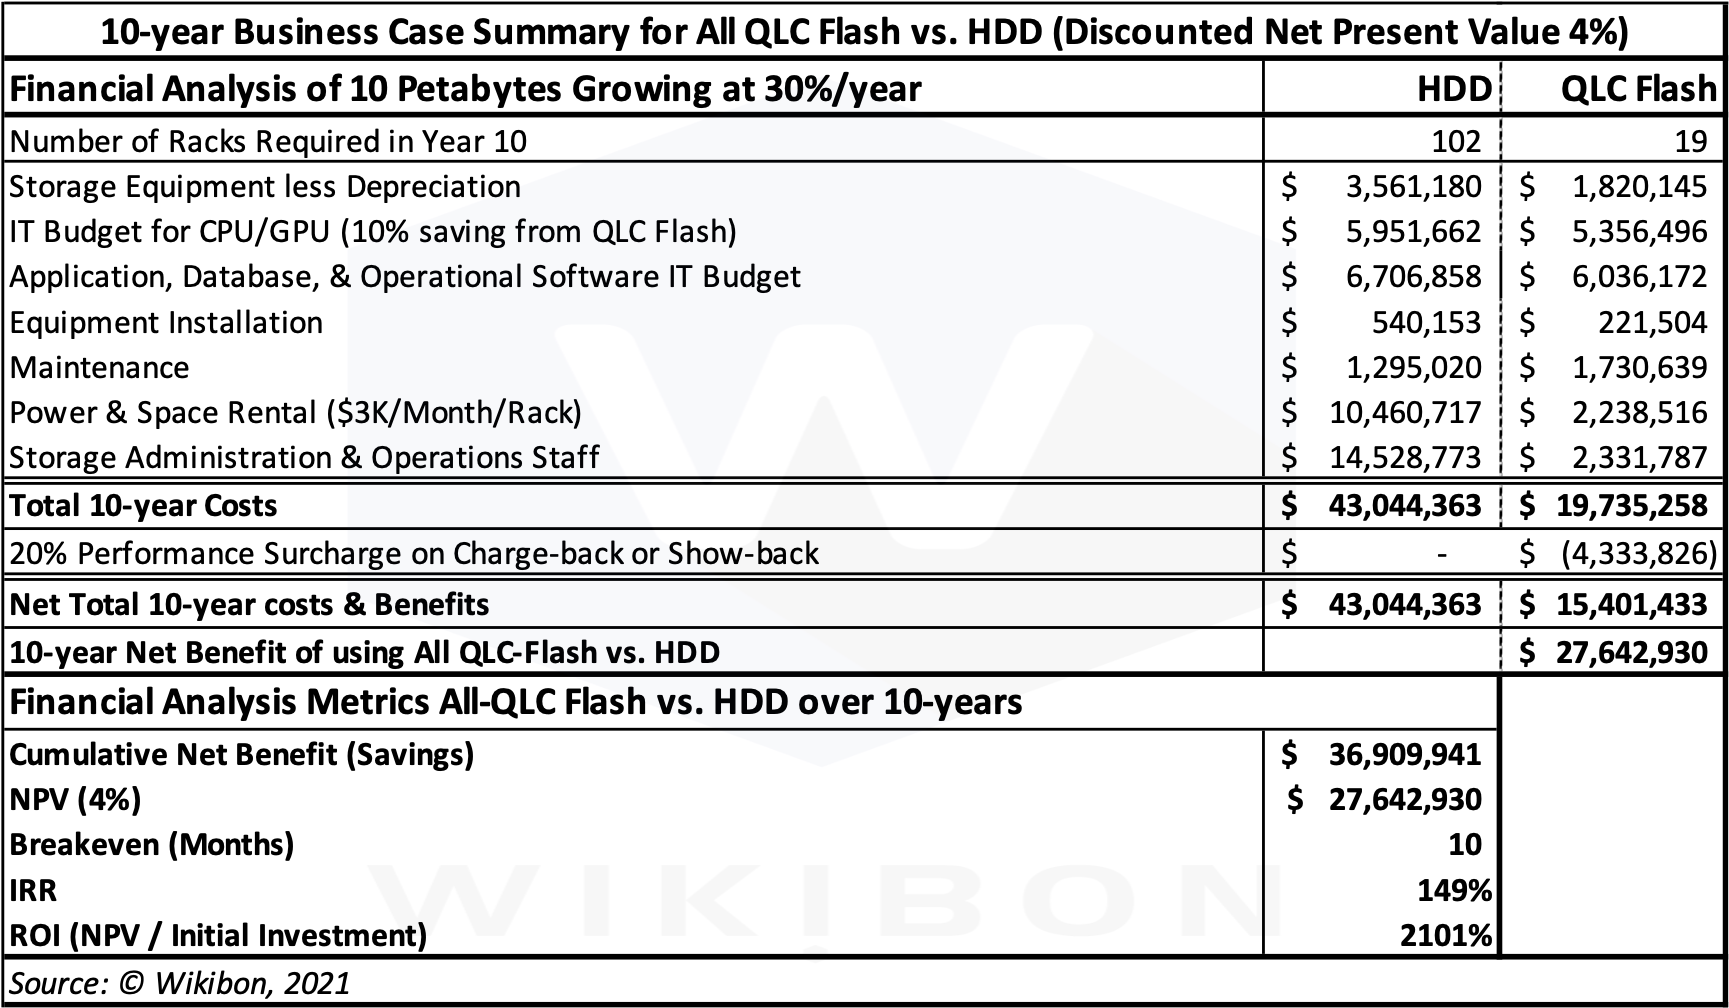 10-year QLC Flash vs. HDD Business Case Table